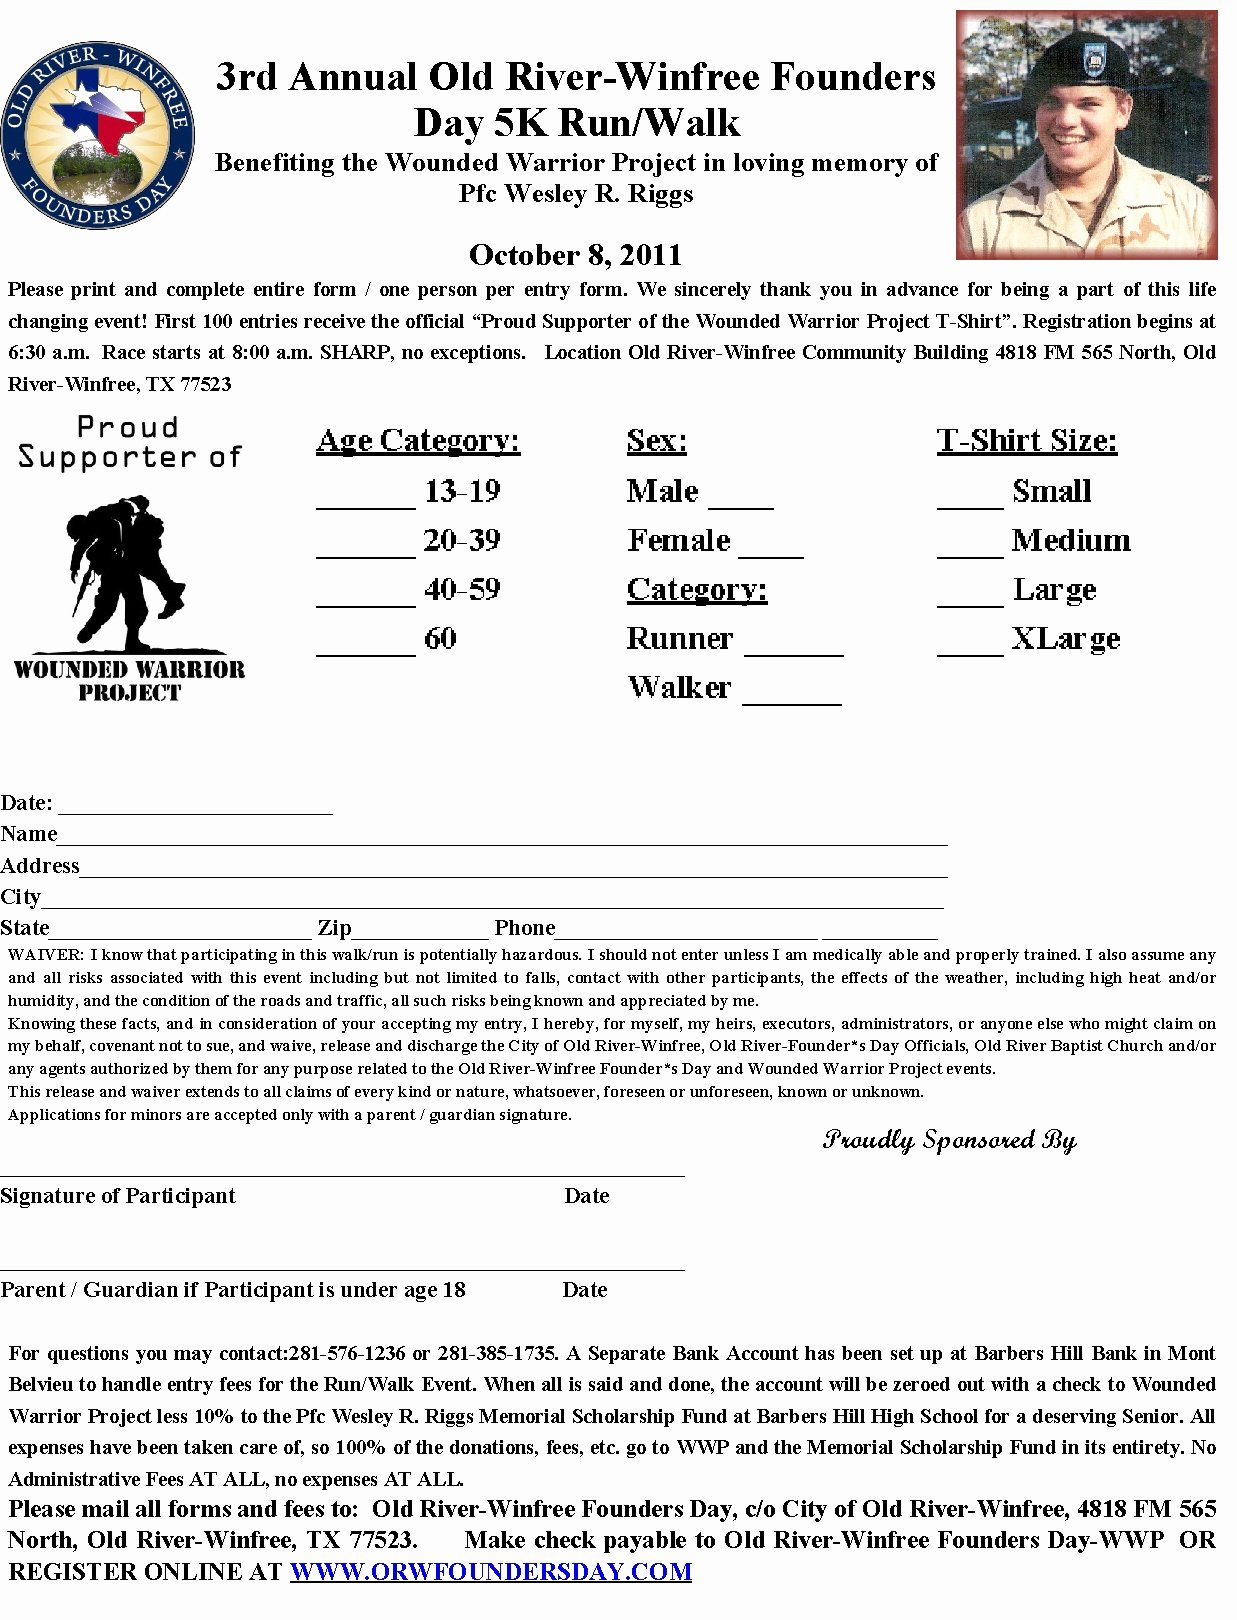 5k Registration form Template Inspirational Barbers Hill Scholarship Fund